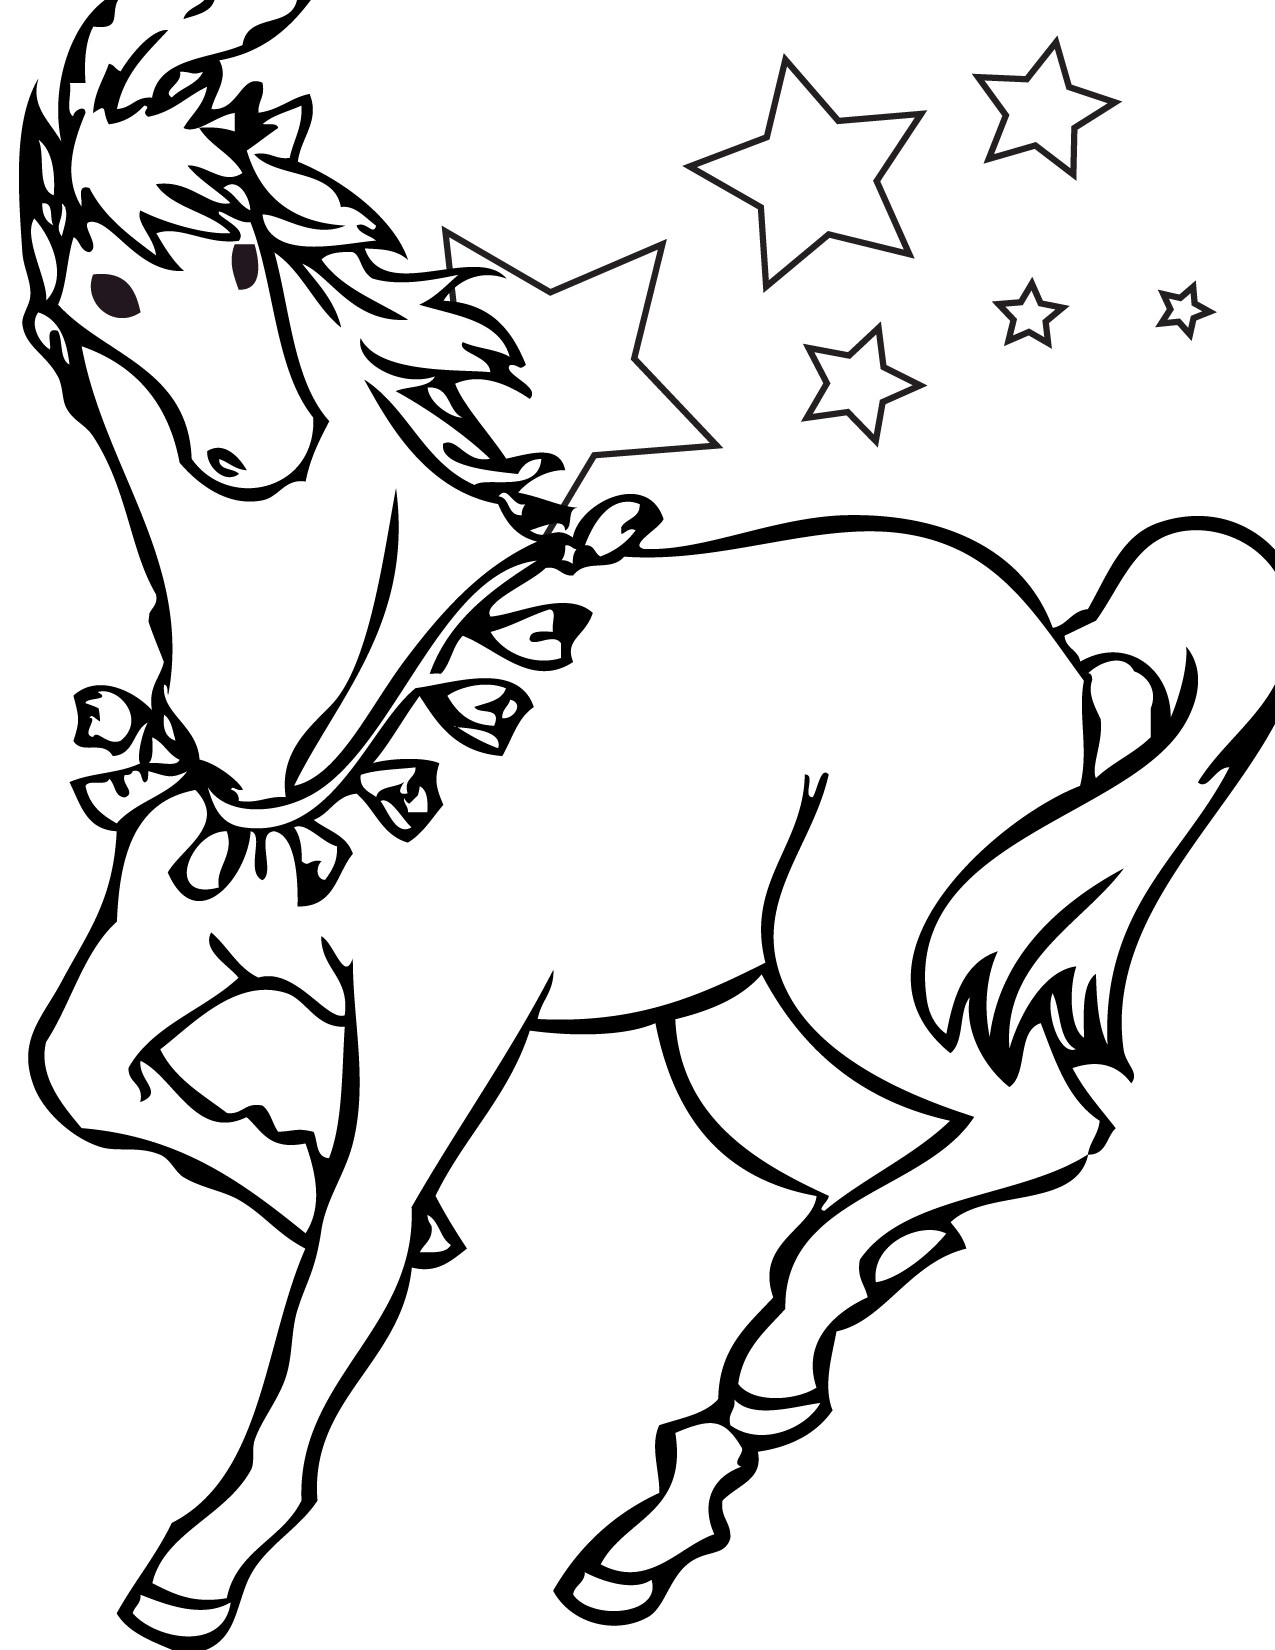 1275x1650 Awesome Coloring Pages Of A Horse Head